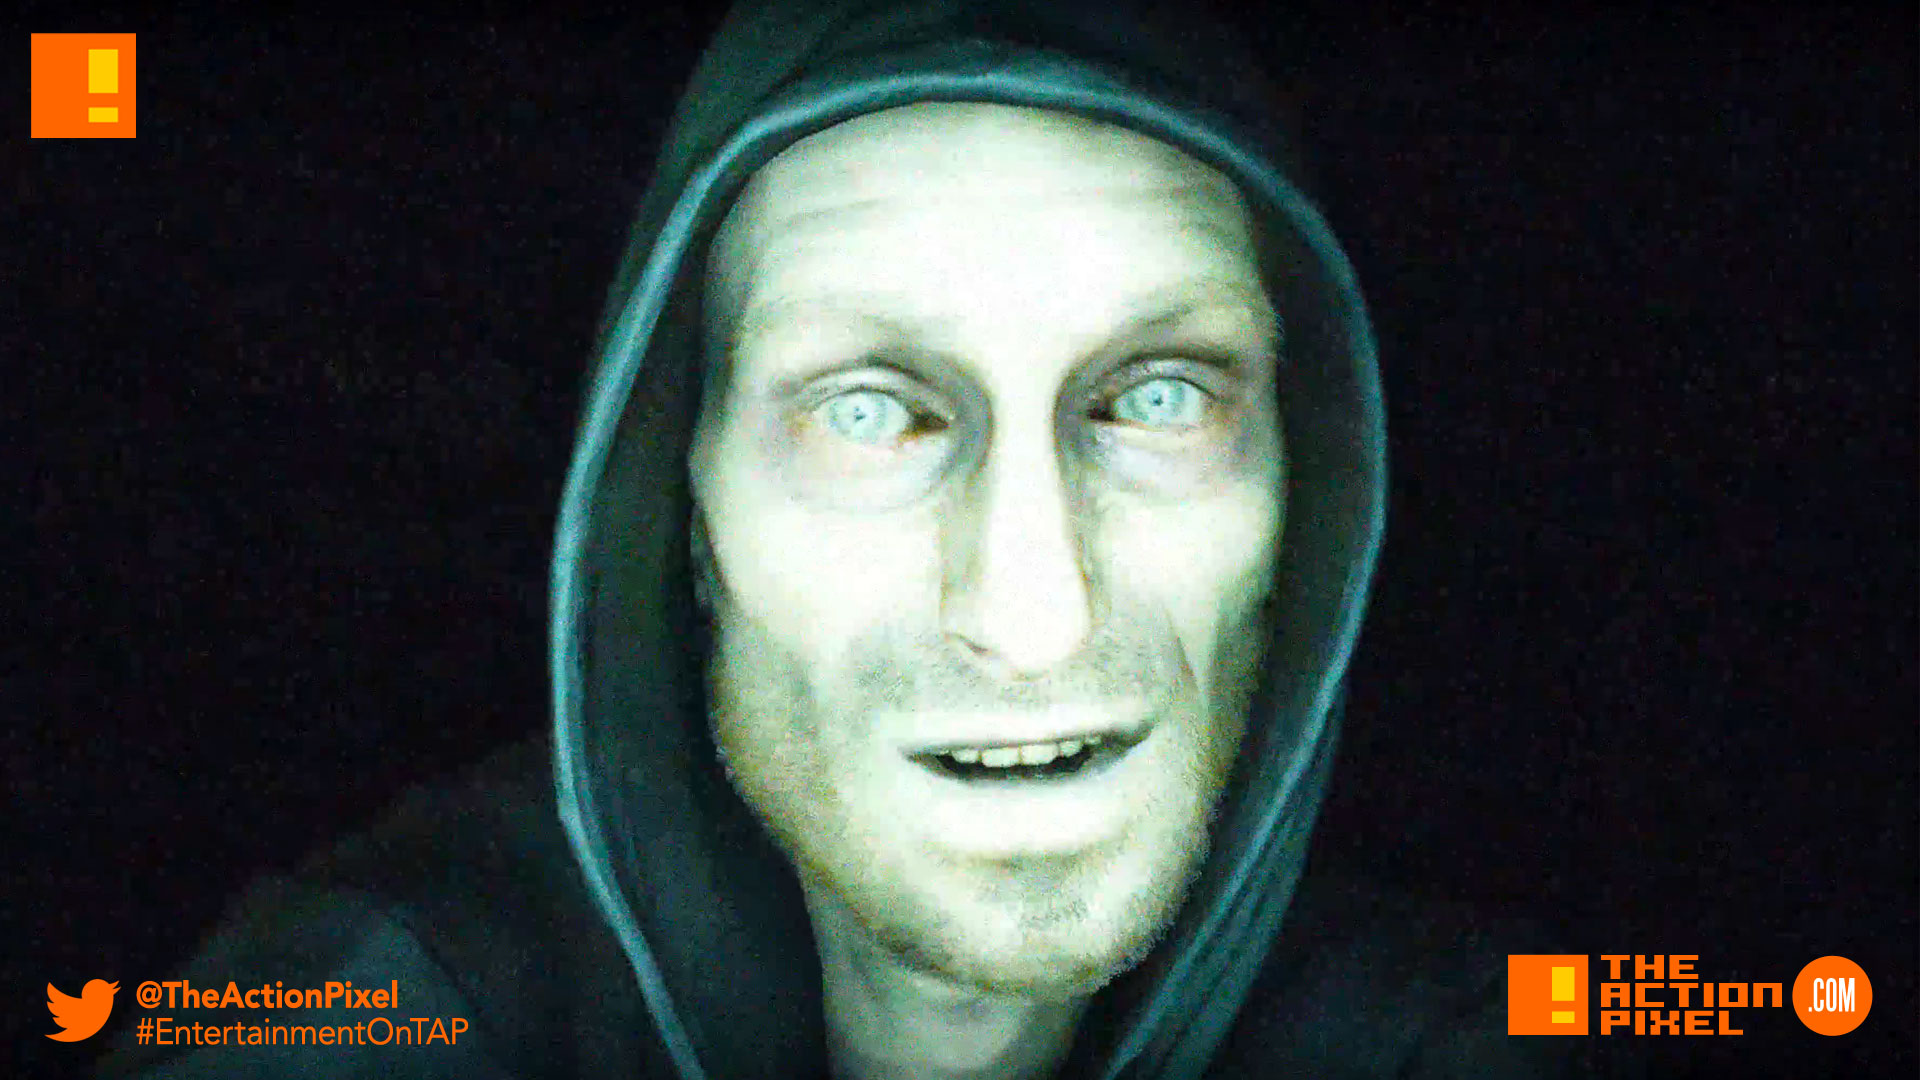 lucas, not a hero, the action pixel, resident evil 7, tape 1, desolation, biohazard, the action pixel, capcom, resident evil, re, promo, tape1 , the action pixel, entertainment on tap, trailer, playstation , xbox, vr, ps4, playstation 4, pc